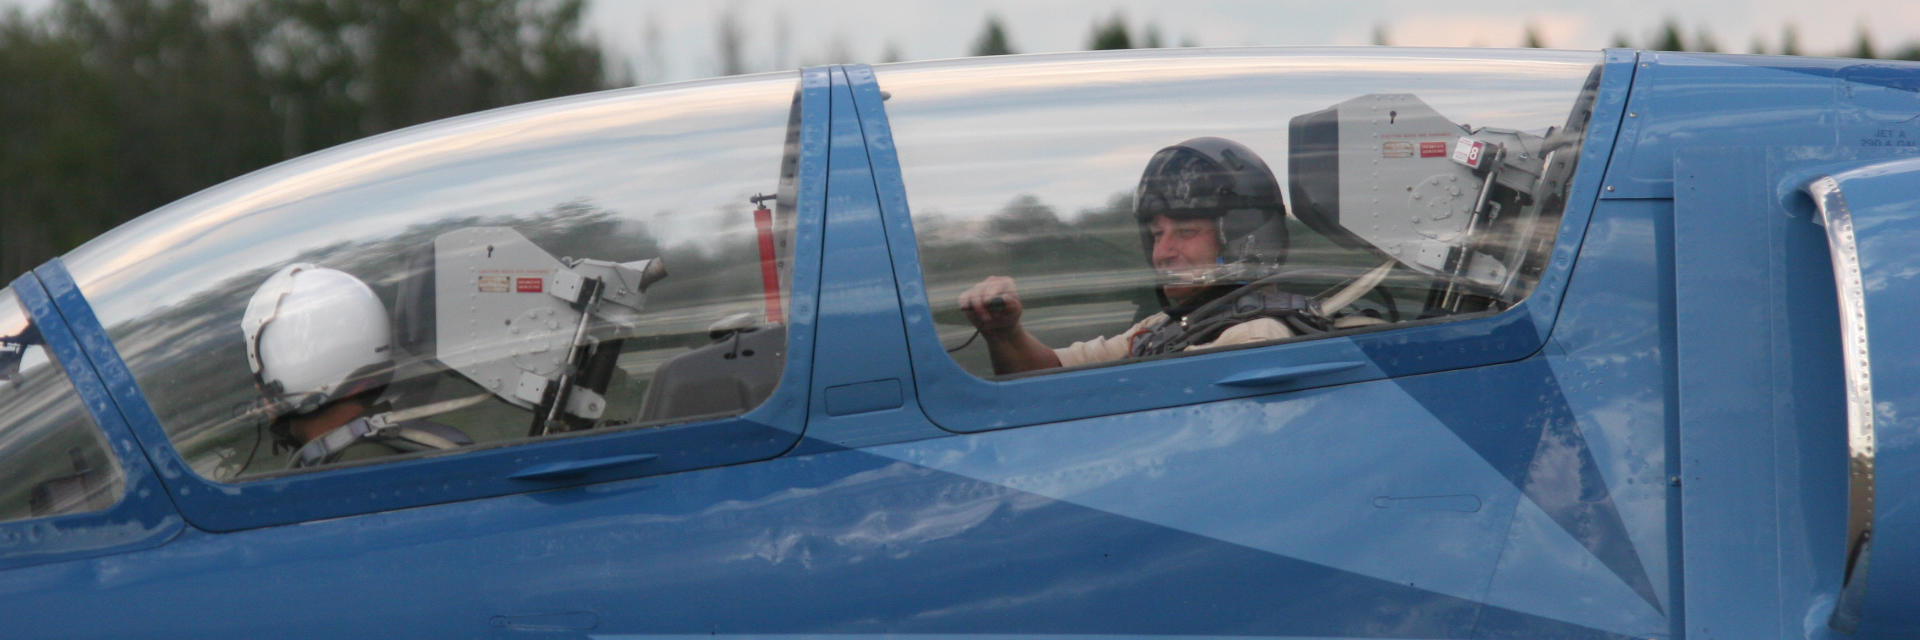 Jet Fighters International Instructor with Trainee-Pilot Before Take Off